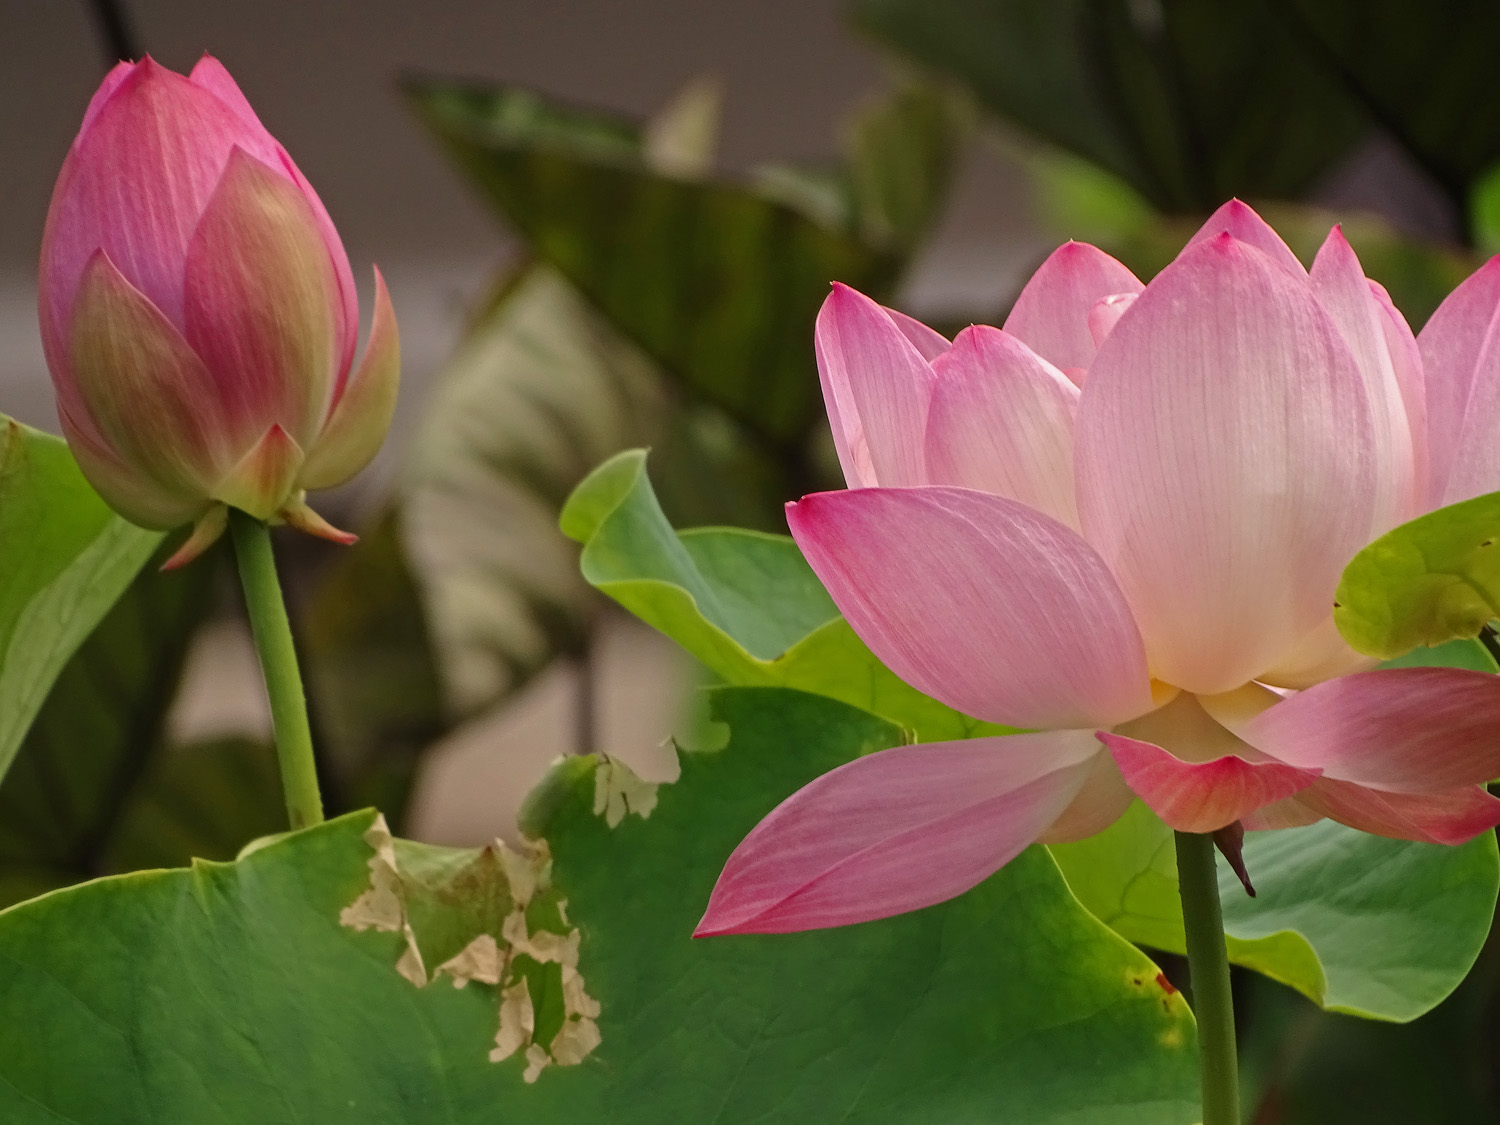 Lotus blossoms, Bethesda Fountain, July 3, 2019